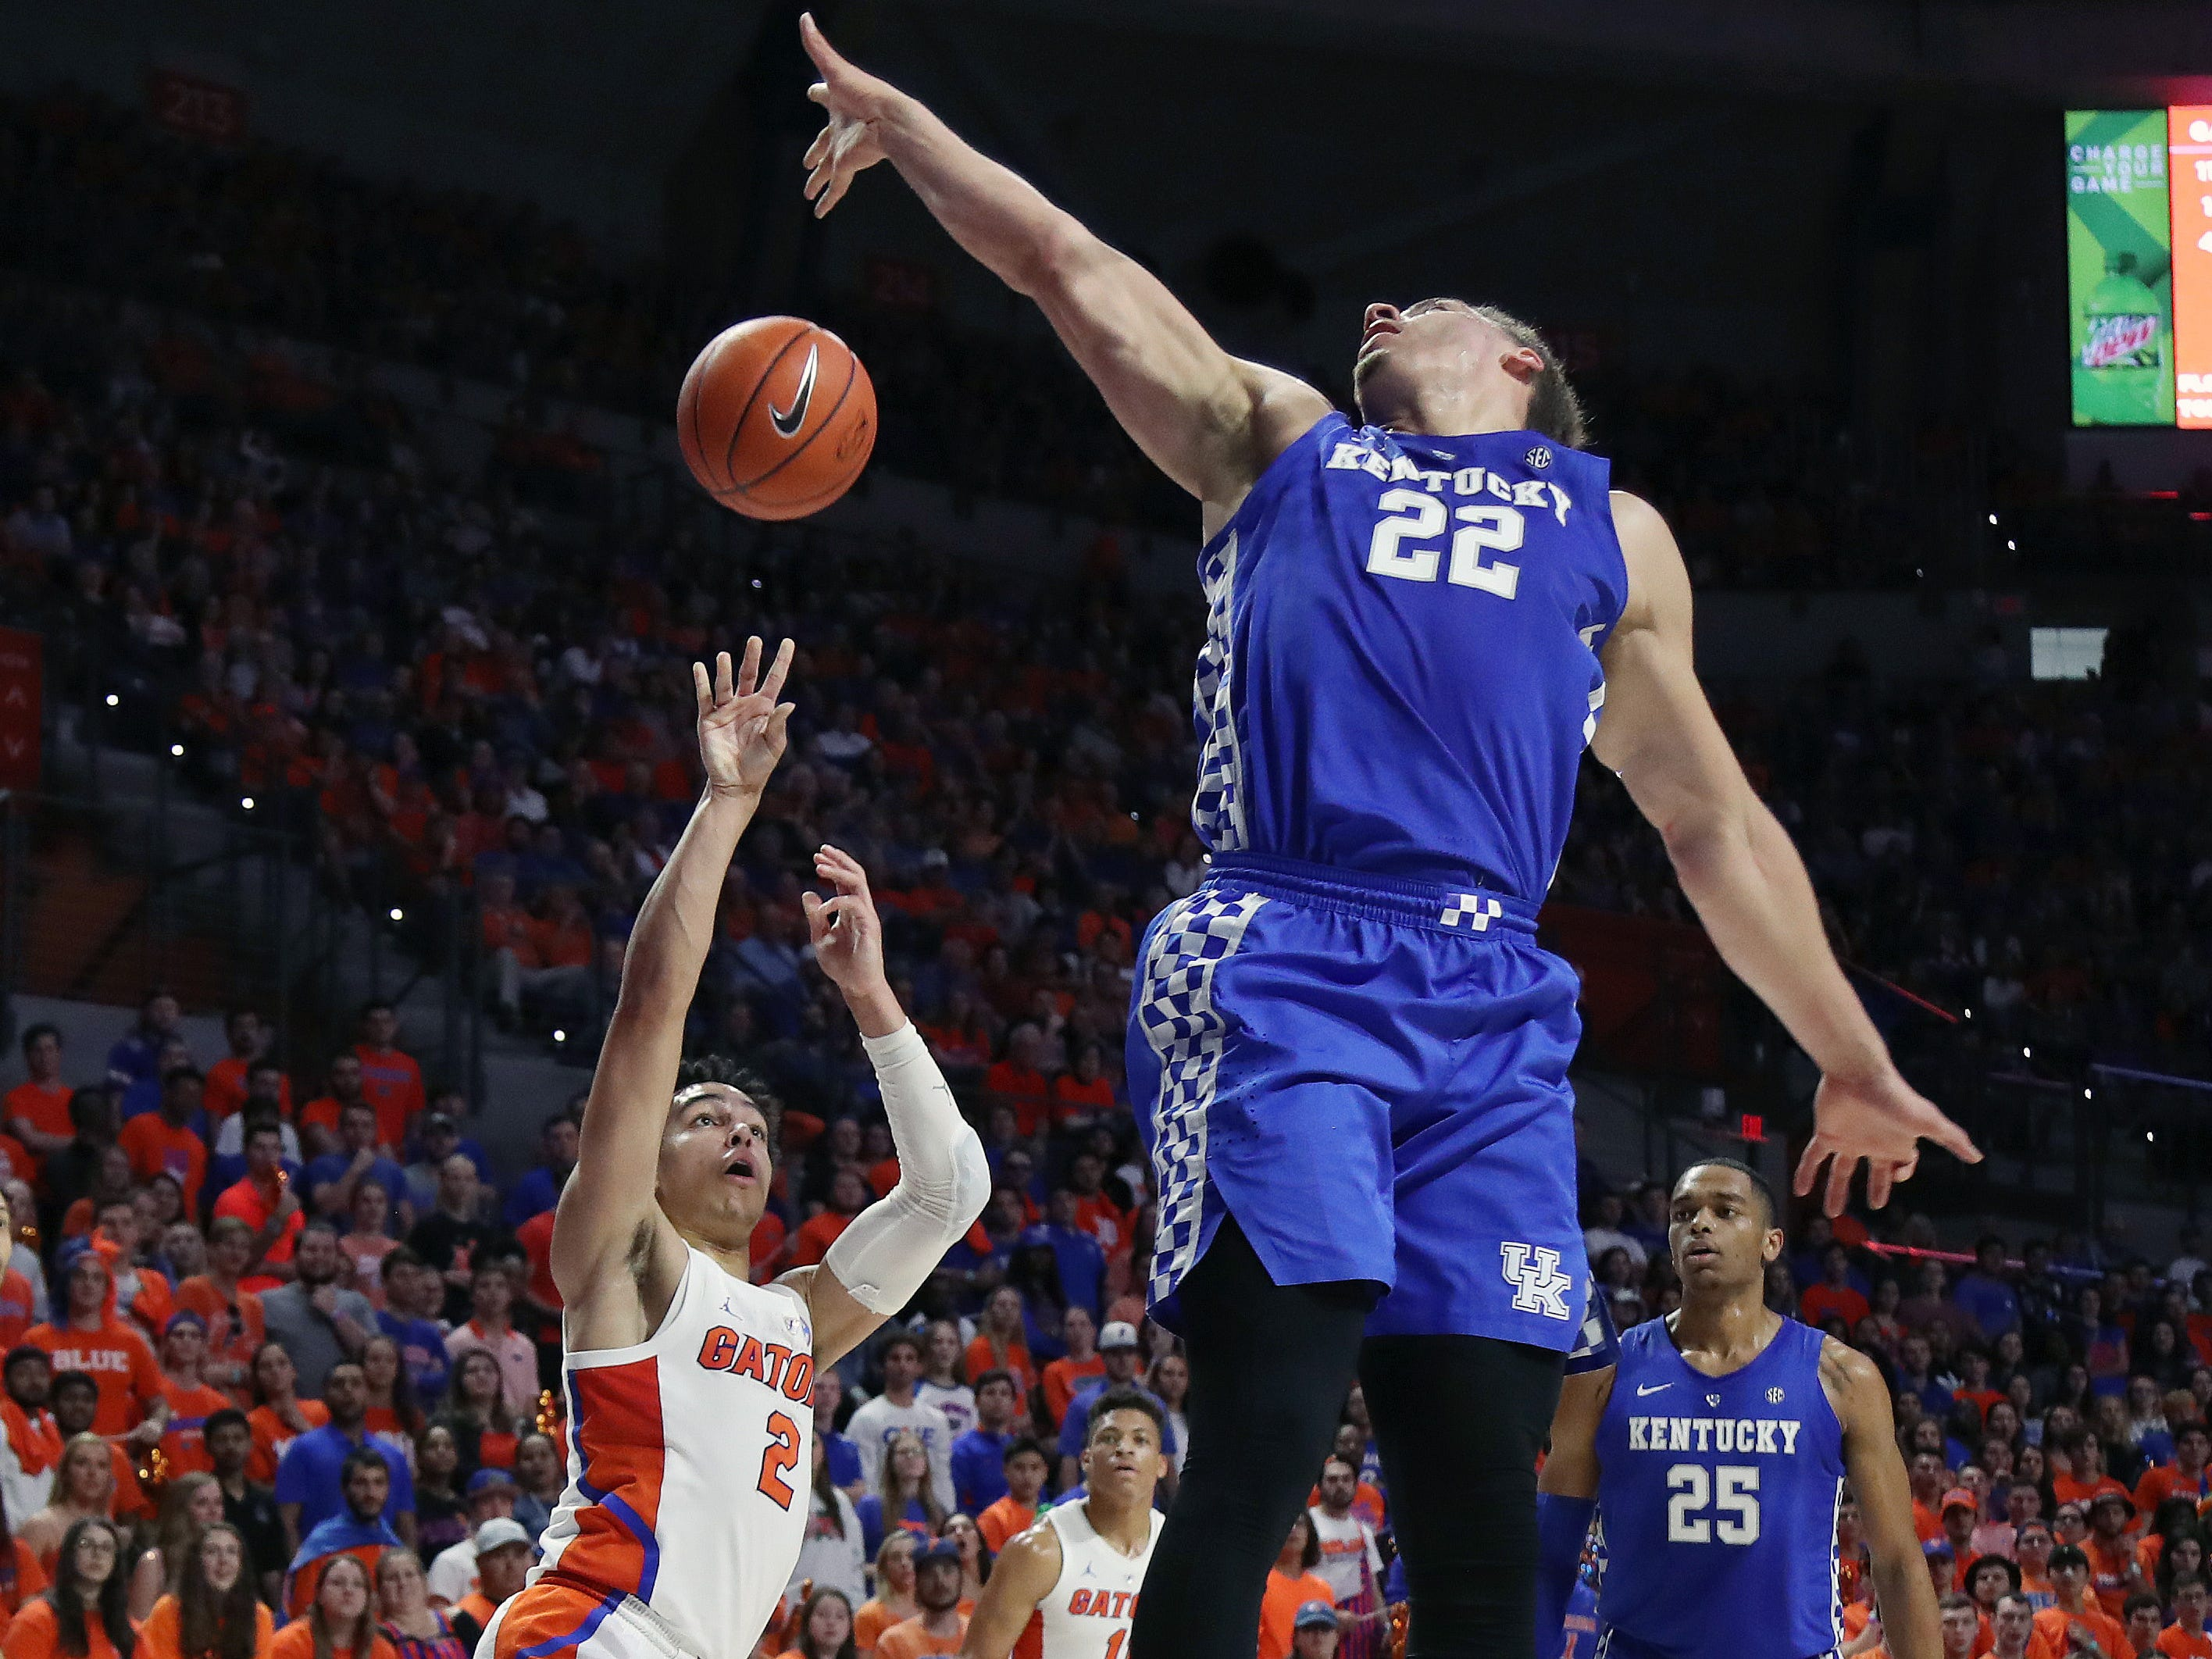 Florida Gators guard Andrew Nembhard (2) shoots over Kentucky Wildcats forward Reid Travis (22)  during the first half at Exactech Arena in Gainesville, Florida, on Saturday, Feb. 2, 2019.